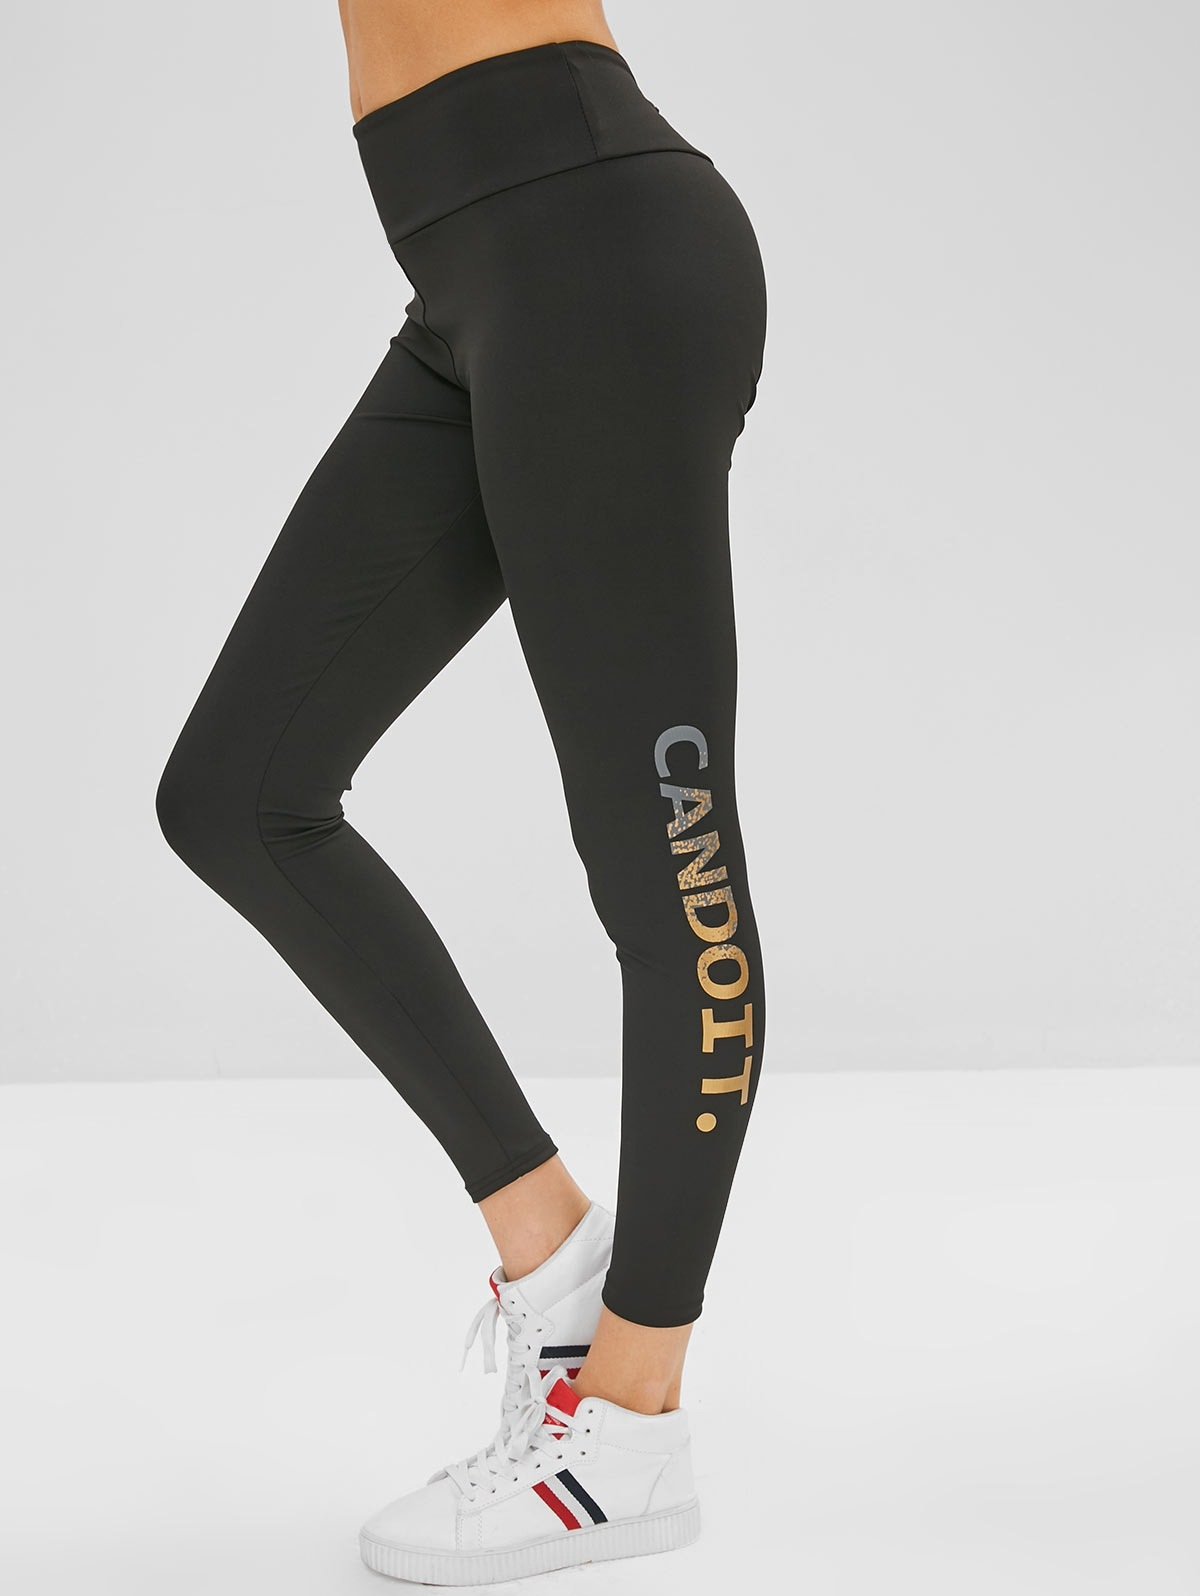 Can Do It Graphic Leggings